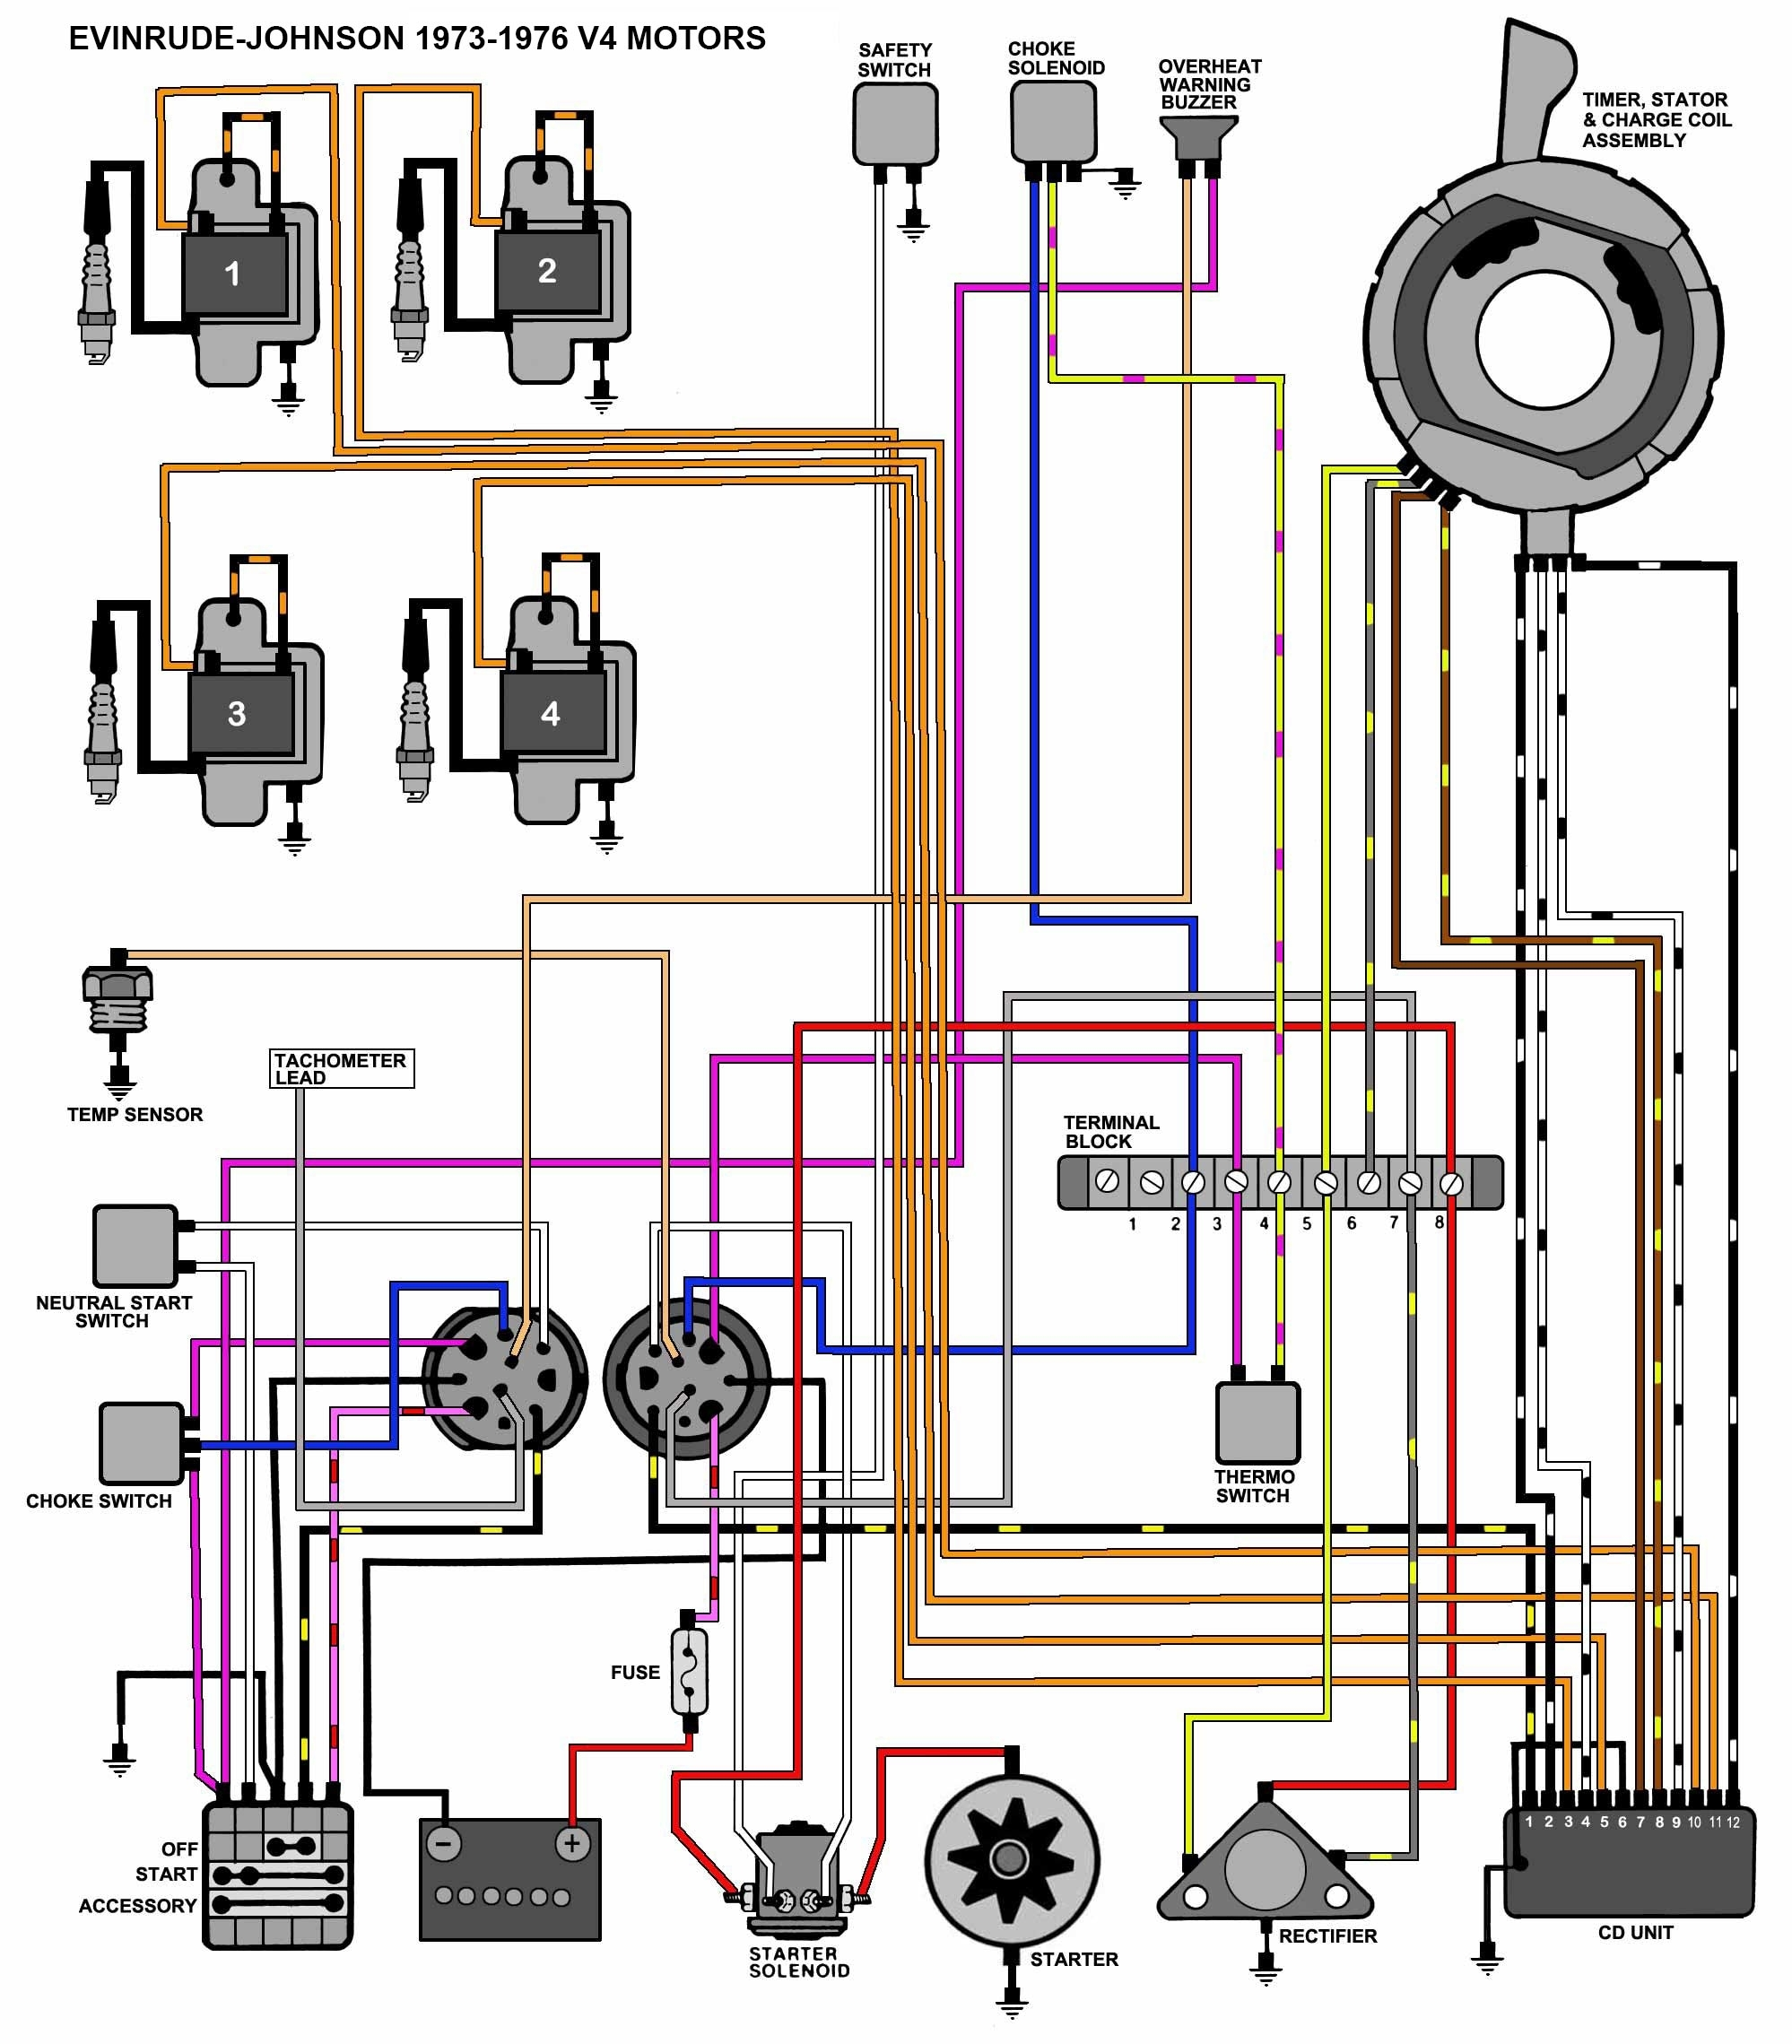 evinrude ignition switch wiring diagram with 1969 omc 55 wiring throughout 70 hp evinrude wiring diagram?resize=665%2C759&ssl=1 pontoon boat wiring diagram 1973 deck wiring diagram, starcraft pontoon boat wiring harness at edmiracle.co